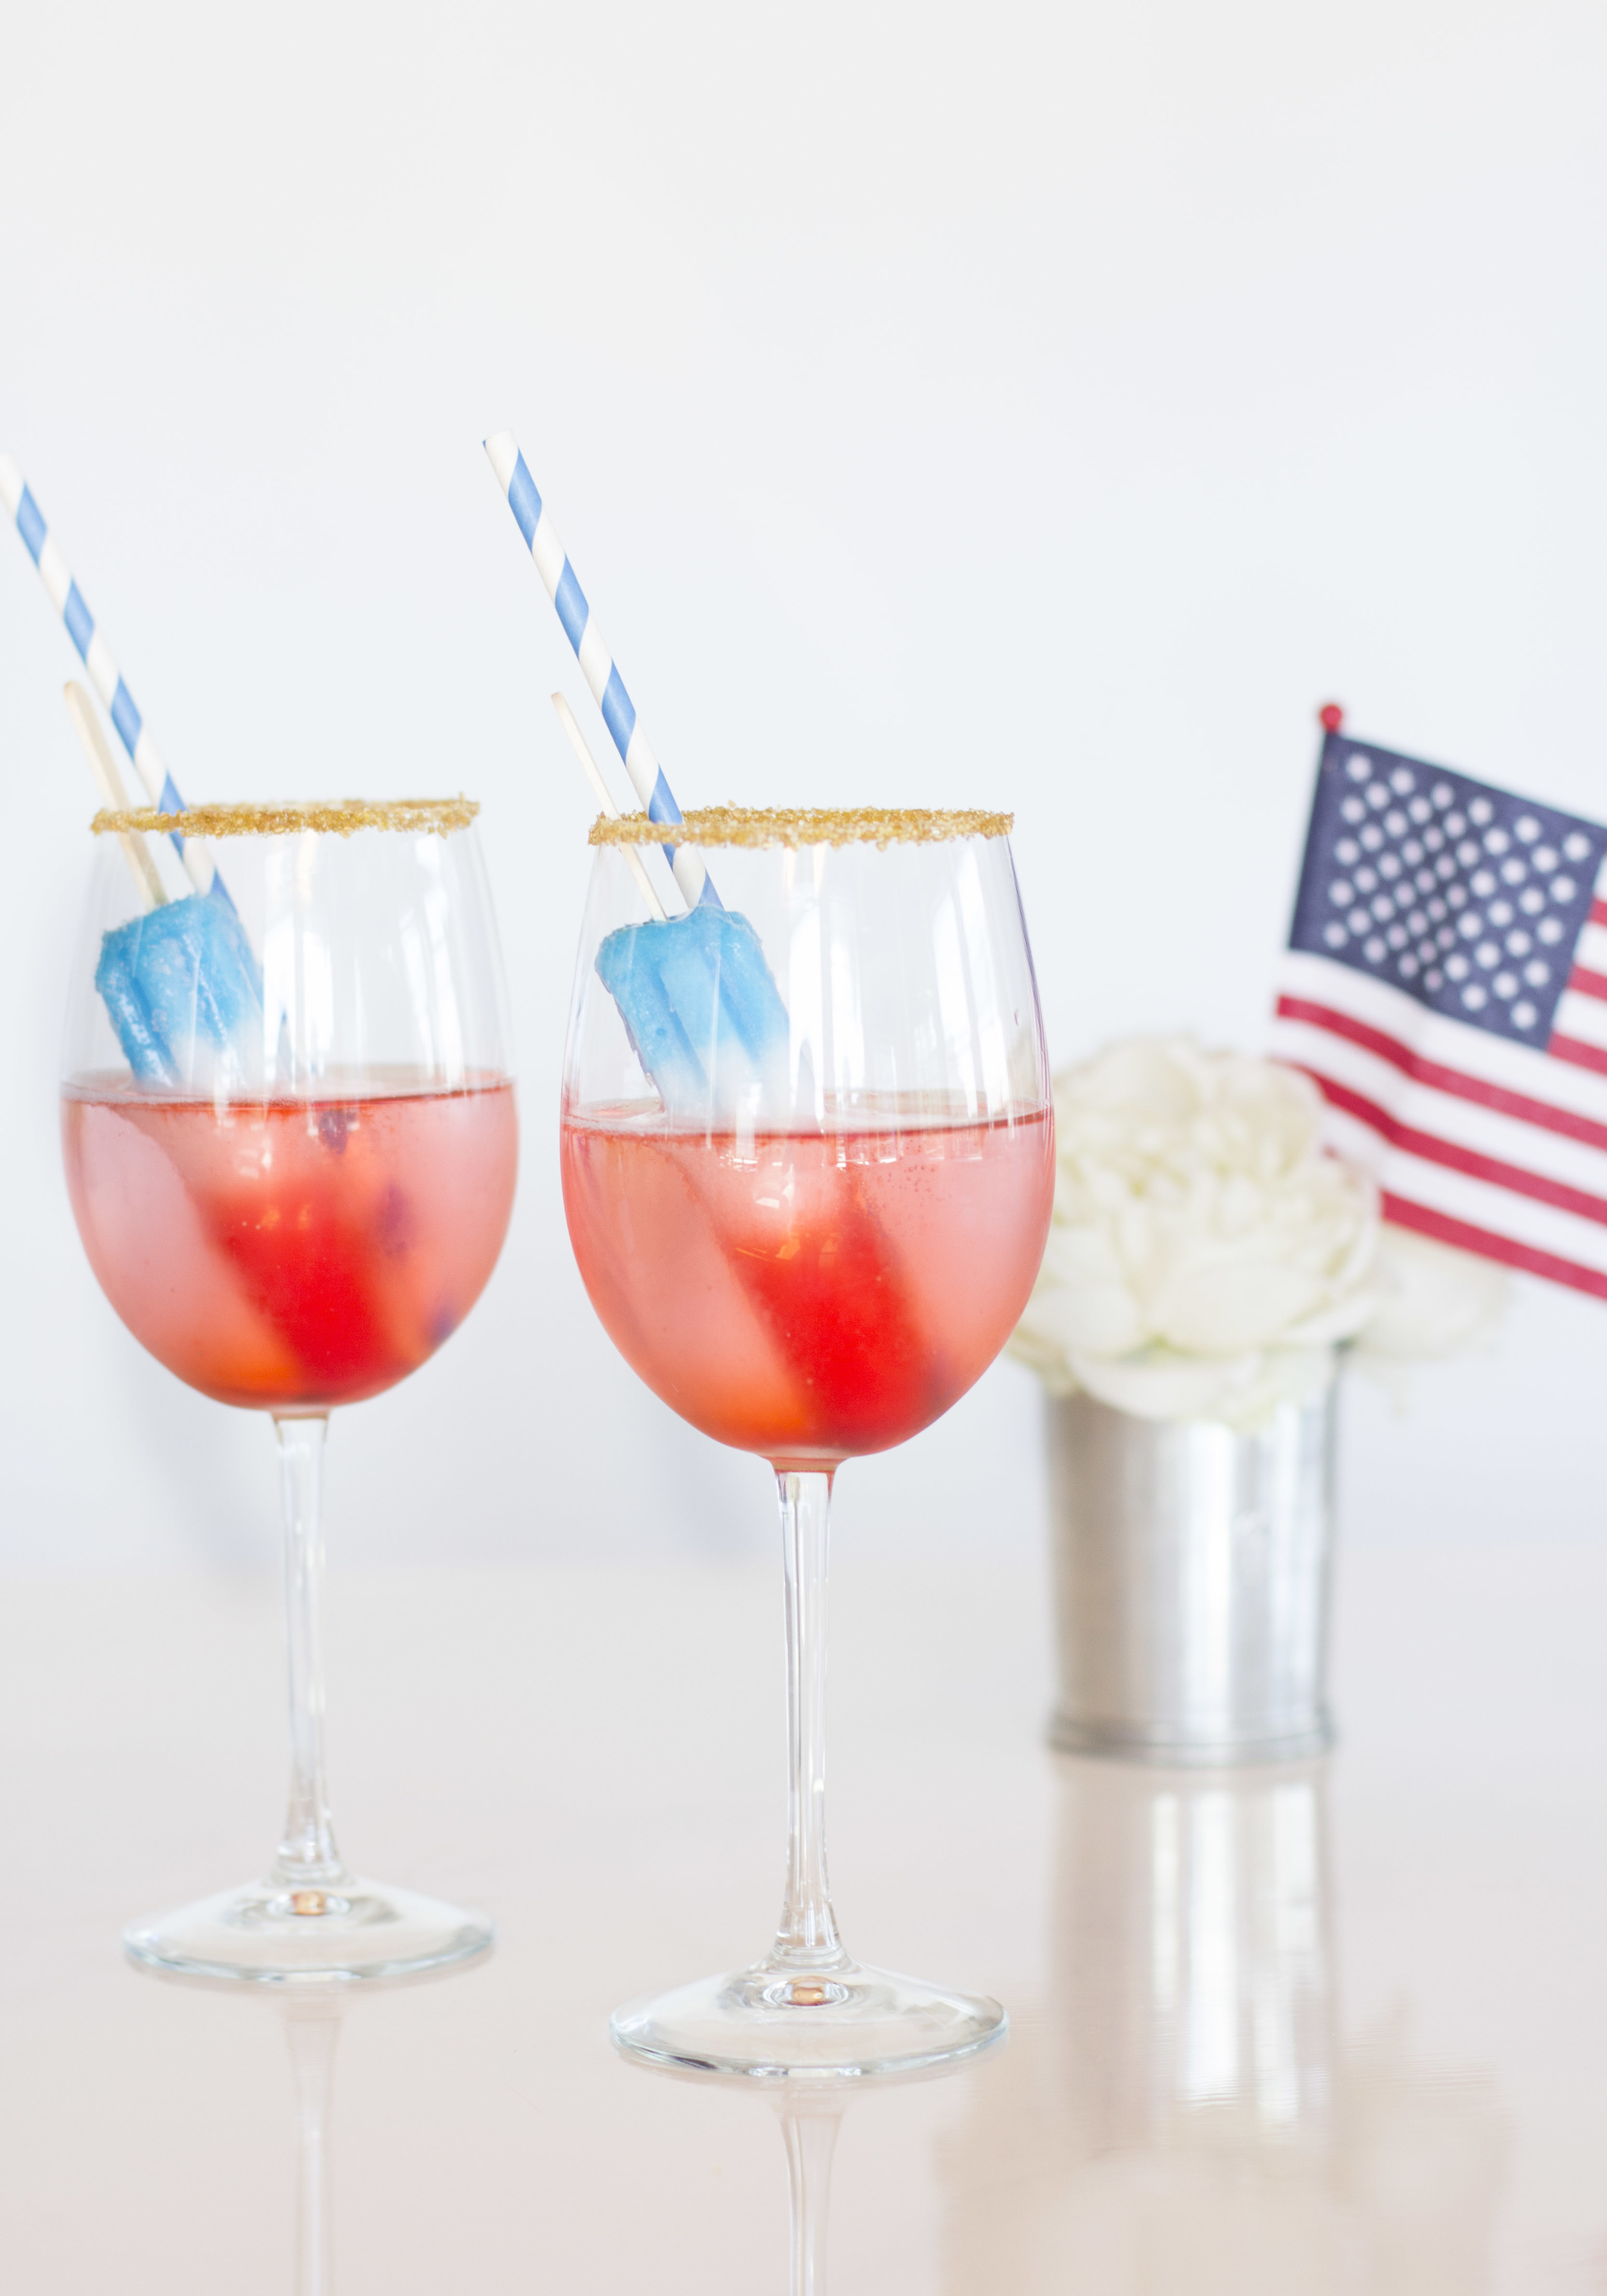 July 4th Cocktails, Prosecco Popsicle Cocktails for the Fourth of July, Red, White, and Blue Champagne Cocktail for Independence Day on www.me-and-mrjones.com!